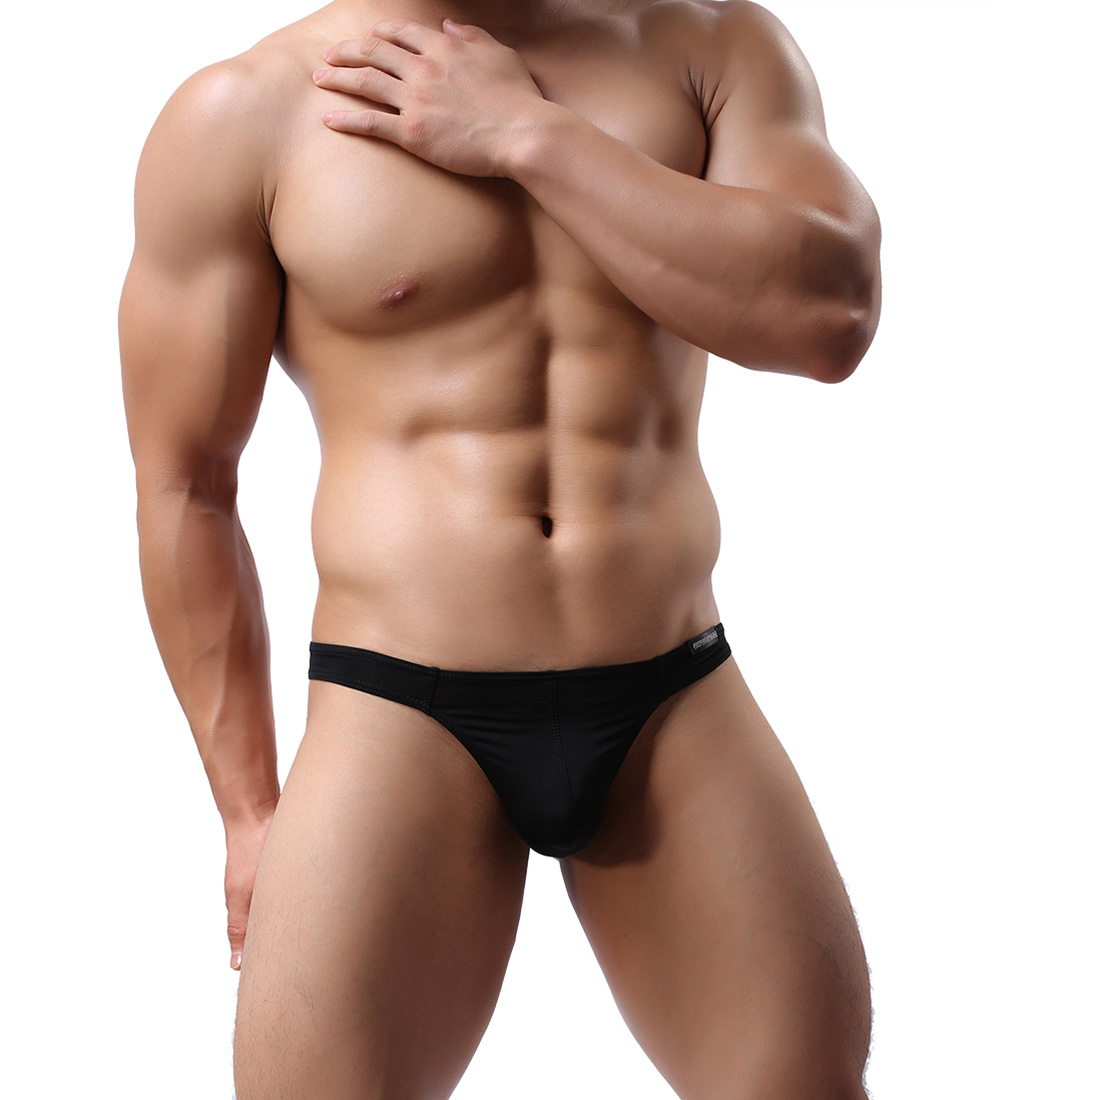 Men's Lingerie Underwear Sexy T-back G-string WH47 Black ...